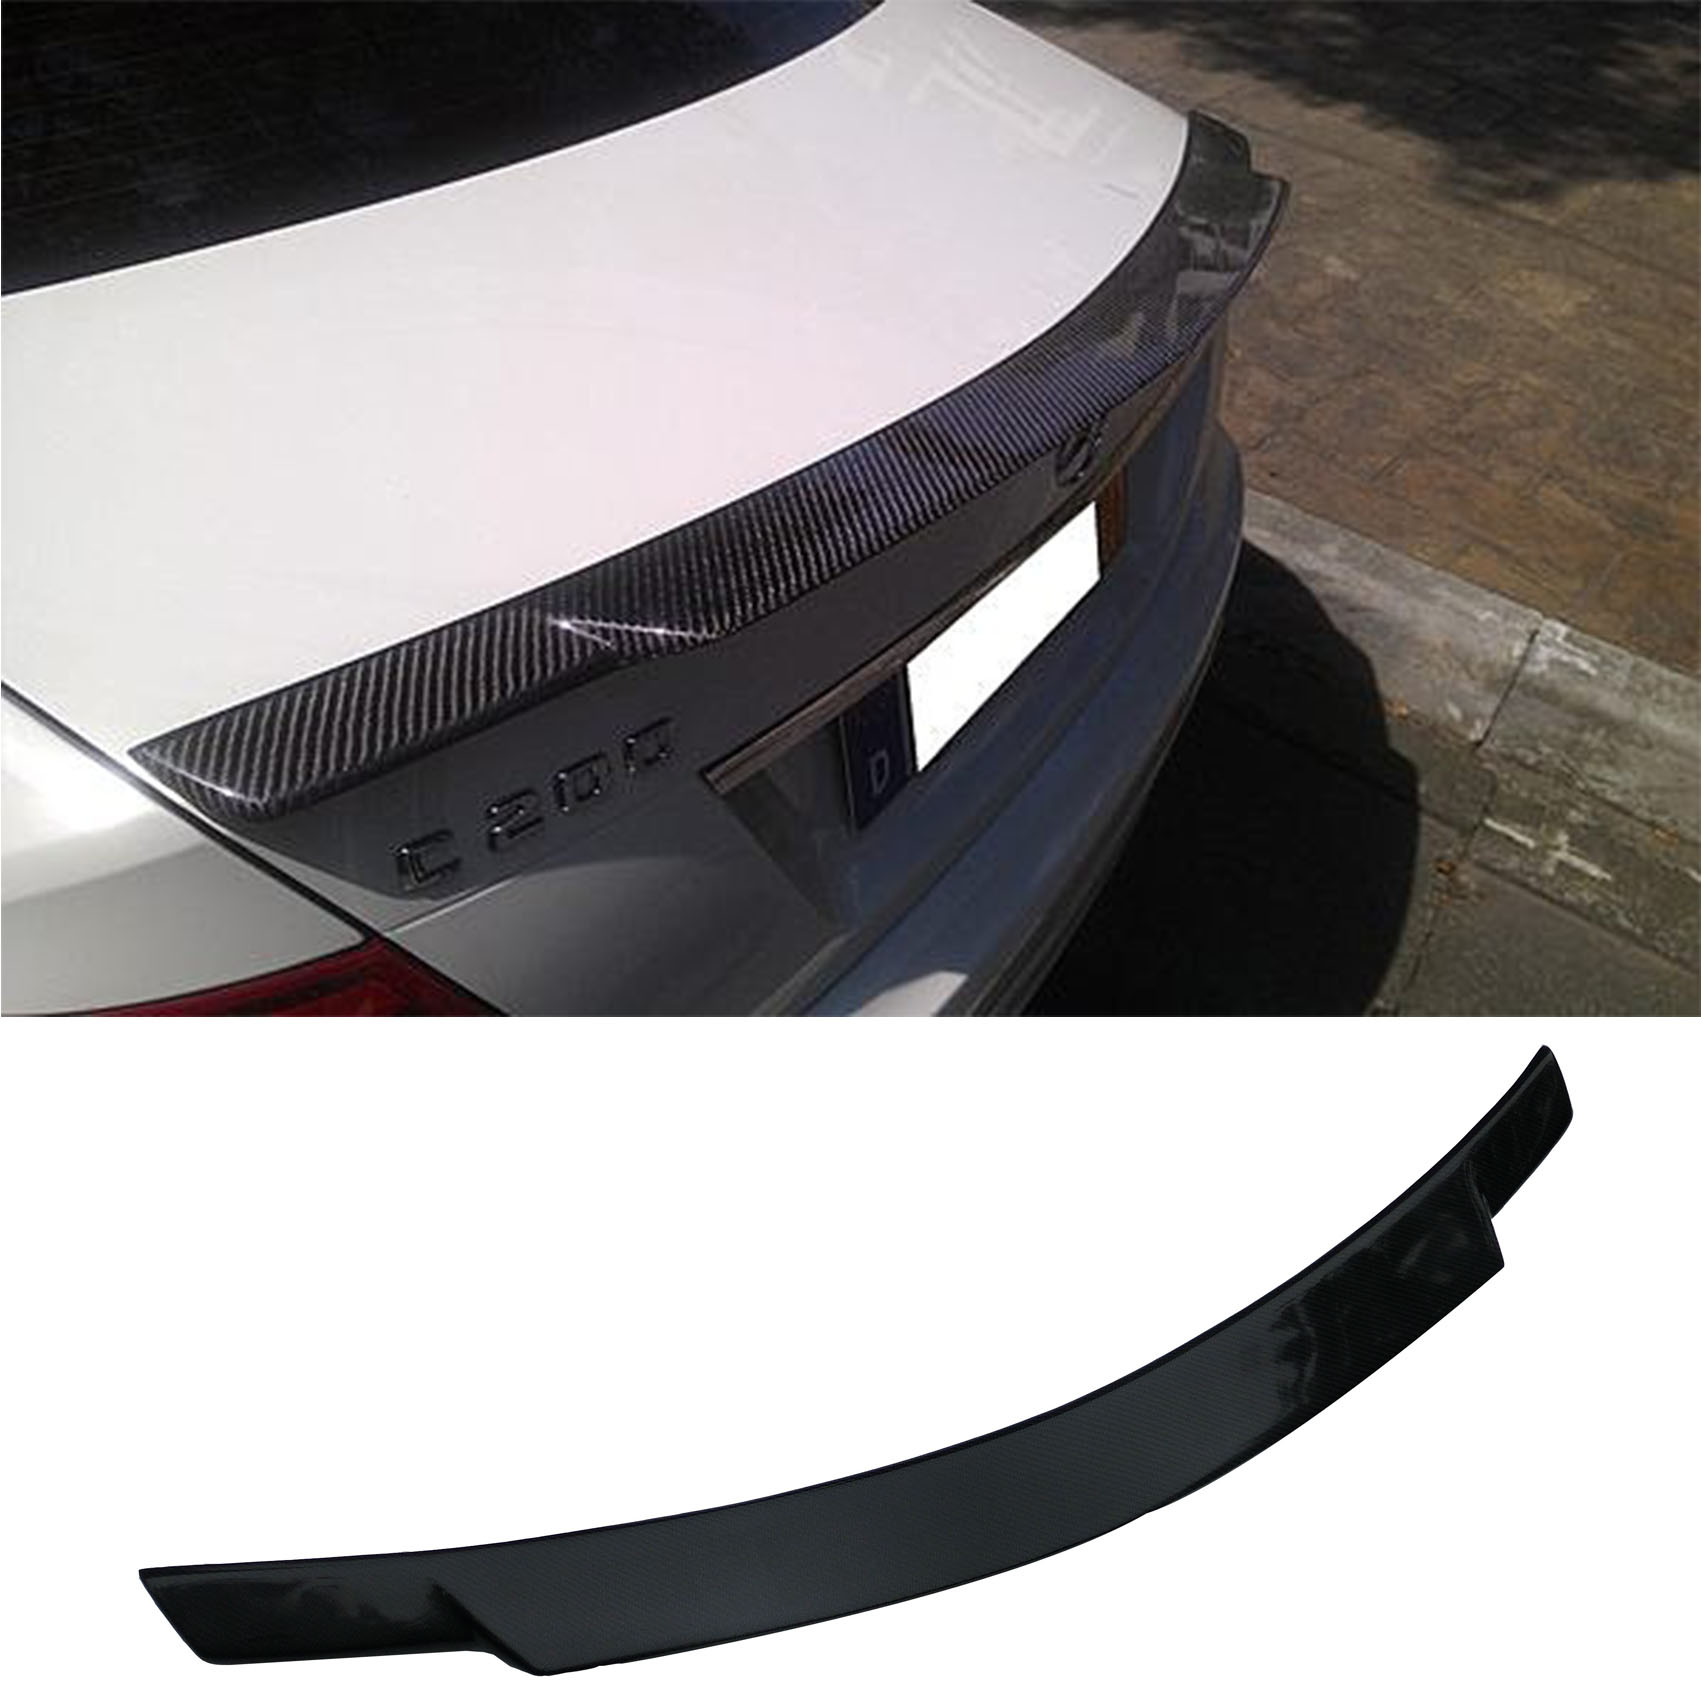 2007-2014 W204 Rear Trunk Boot Lip Spoiler Wing for Mercedes Benz Carbon Fiber C74 Style